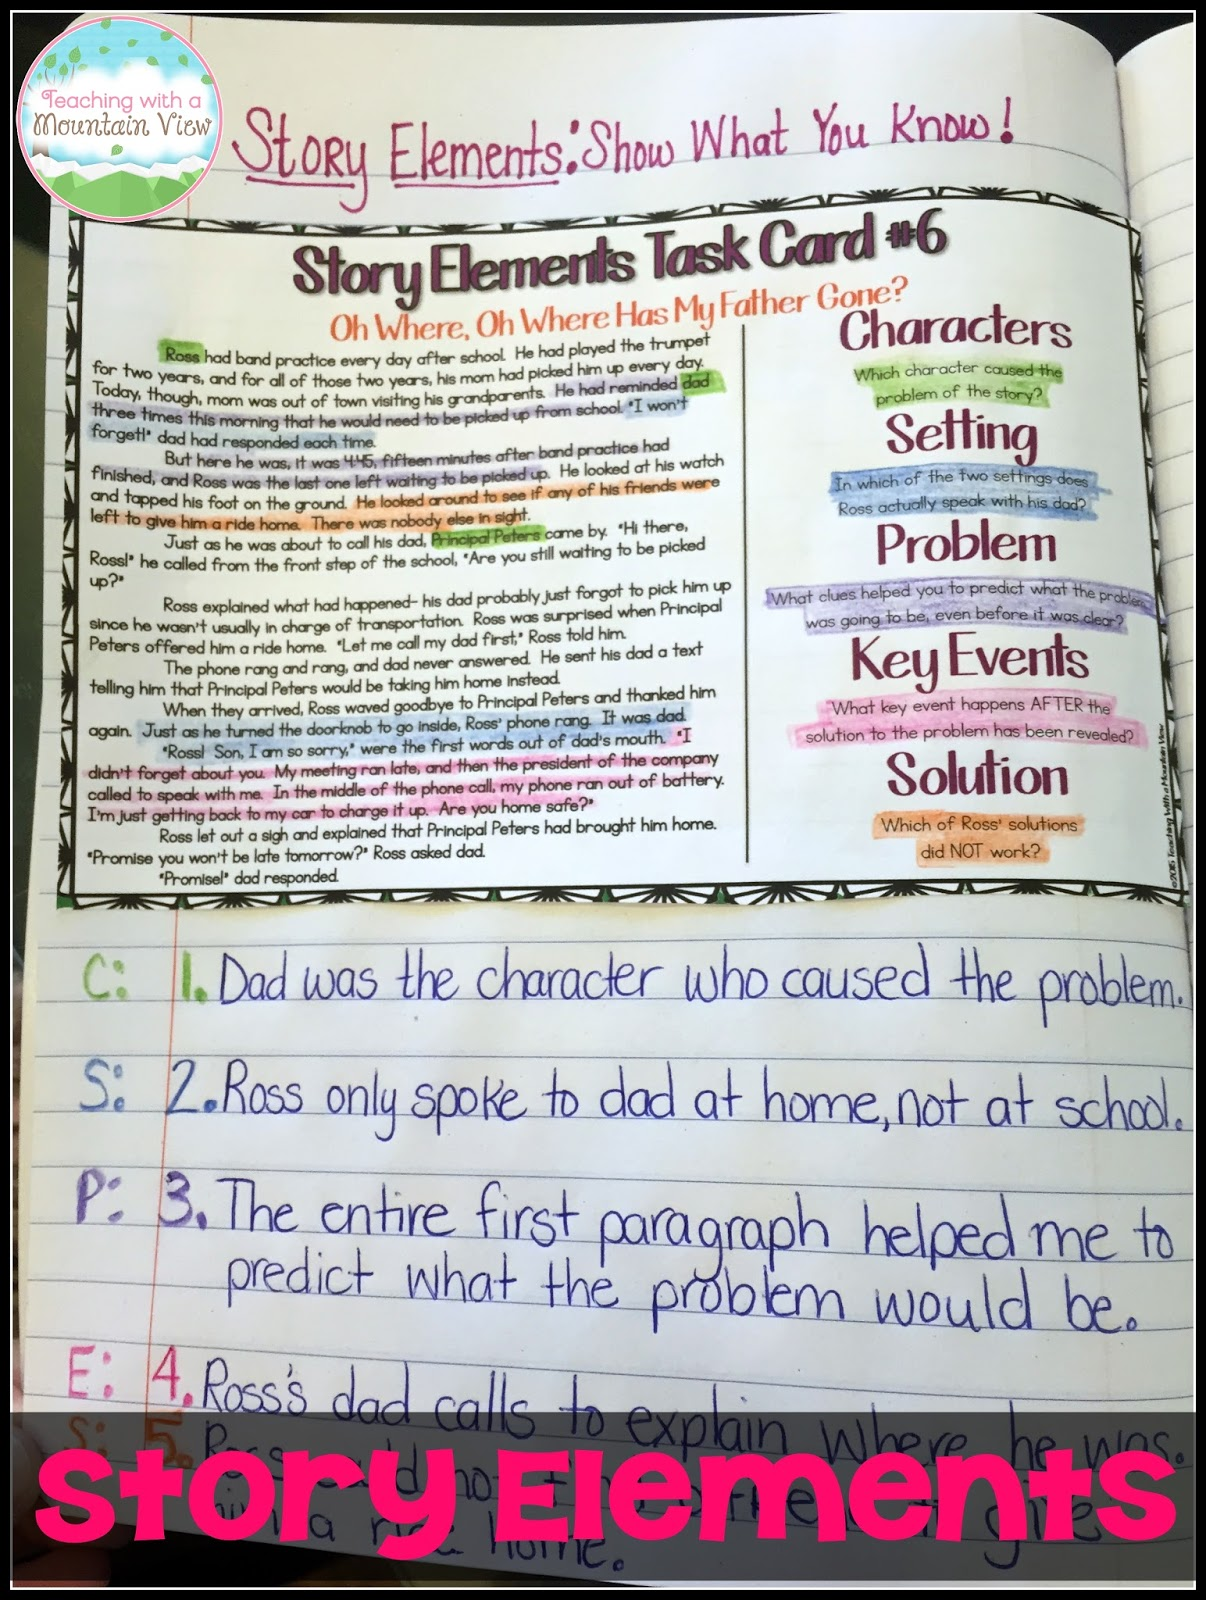 Story Elements Worksheet For 6th Grade   Printable Worksheets and  Activities for Teachers [ 1600 x 1206 Pixel ]